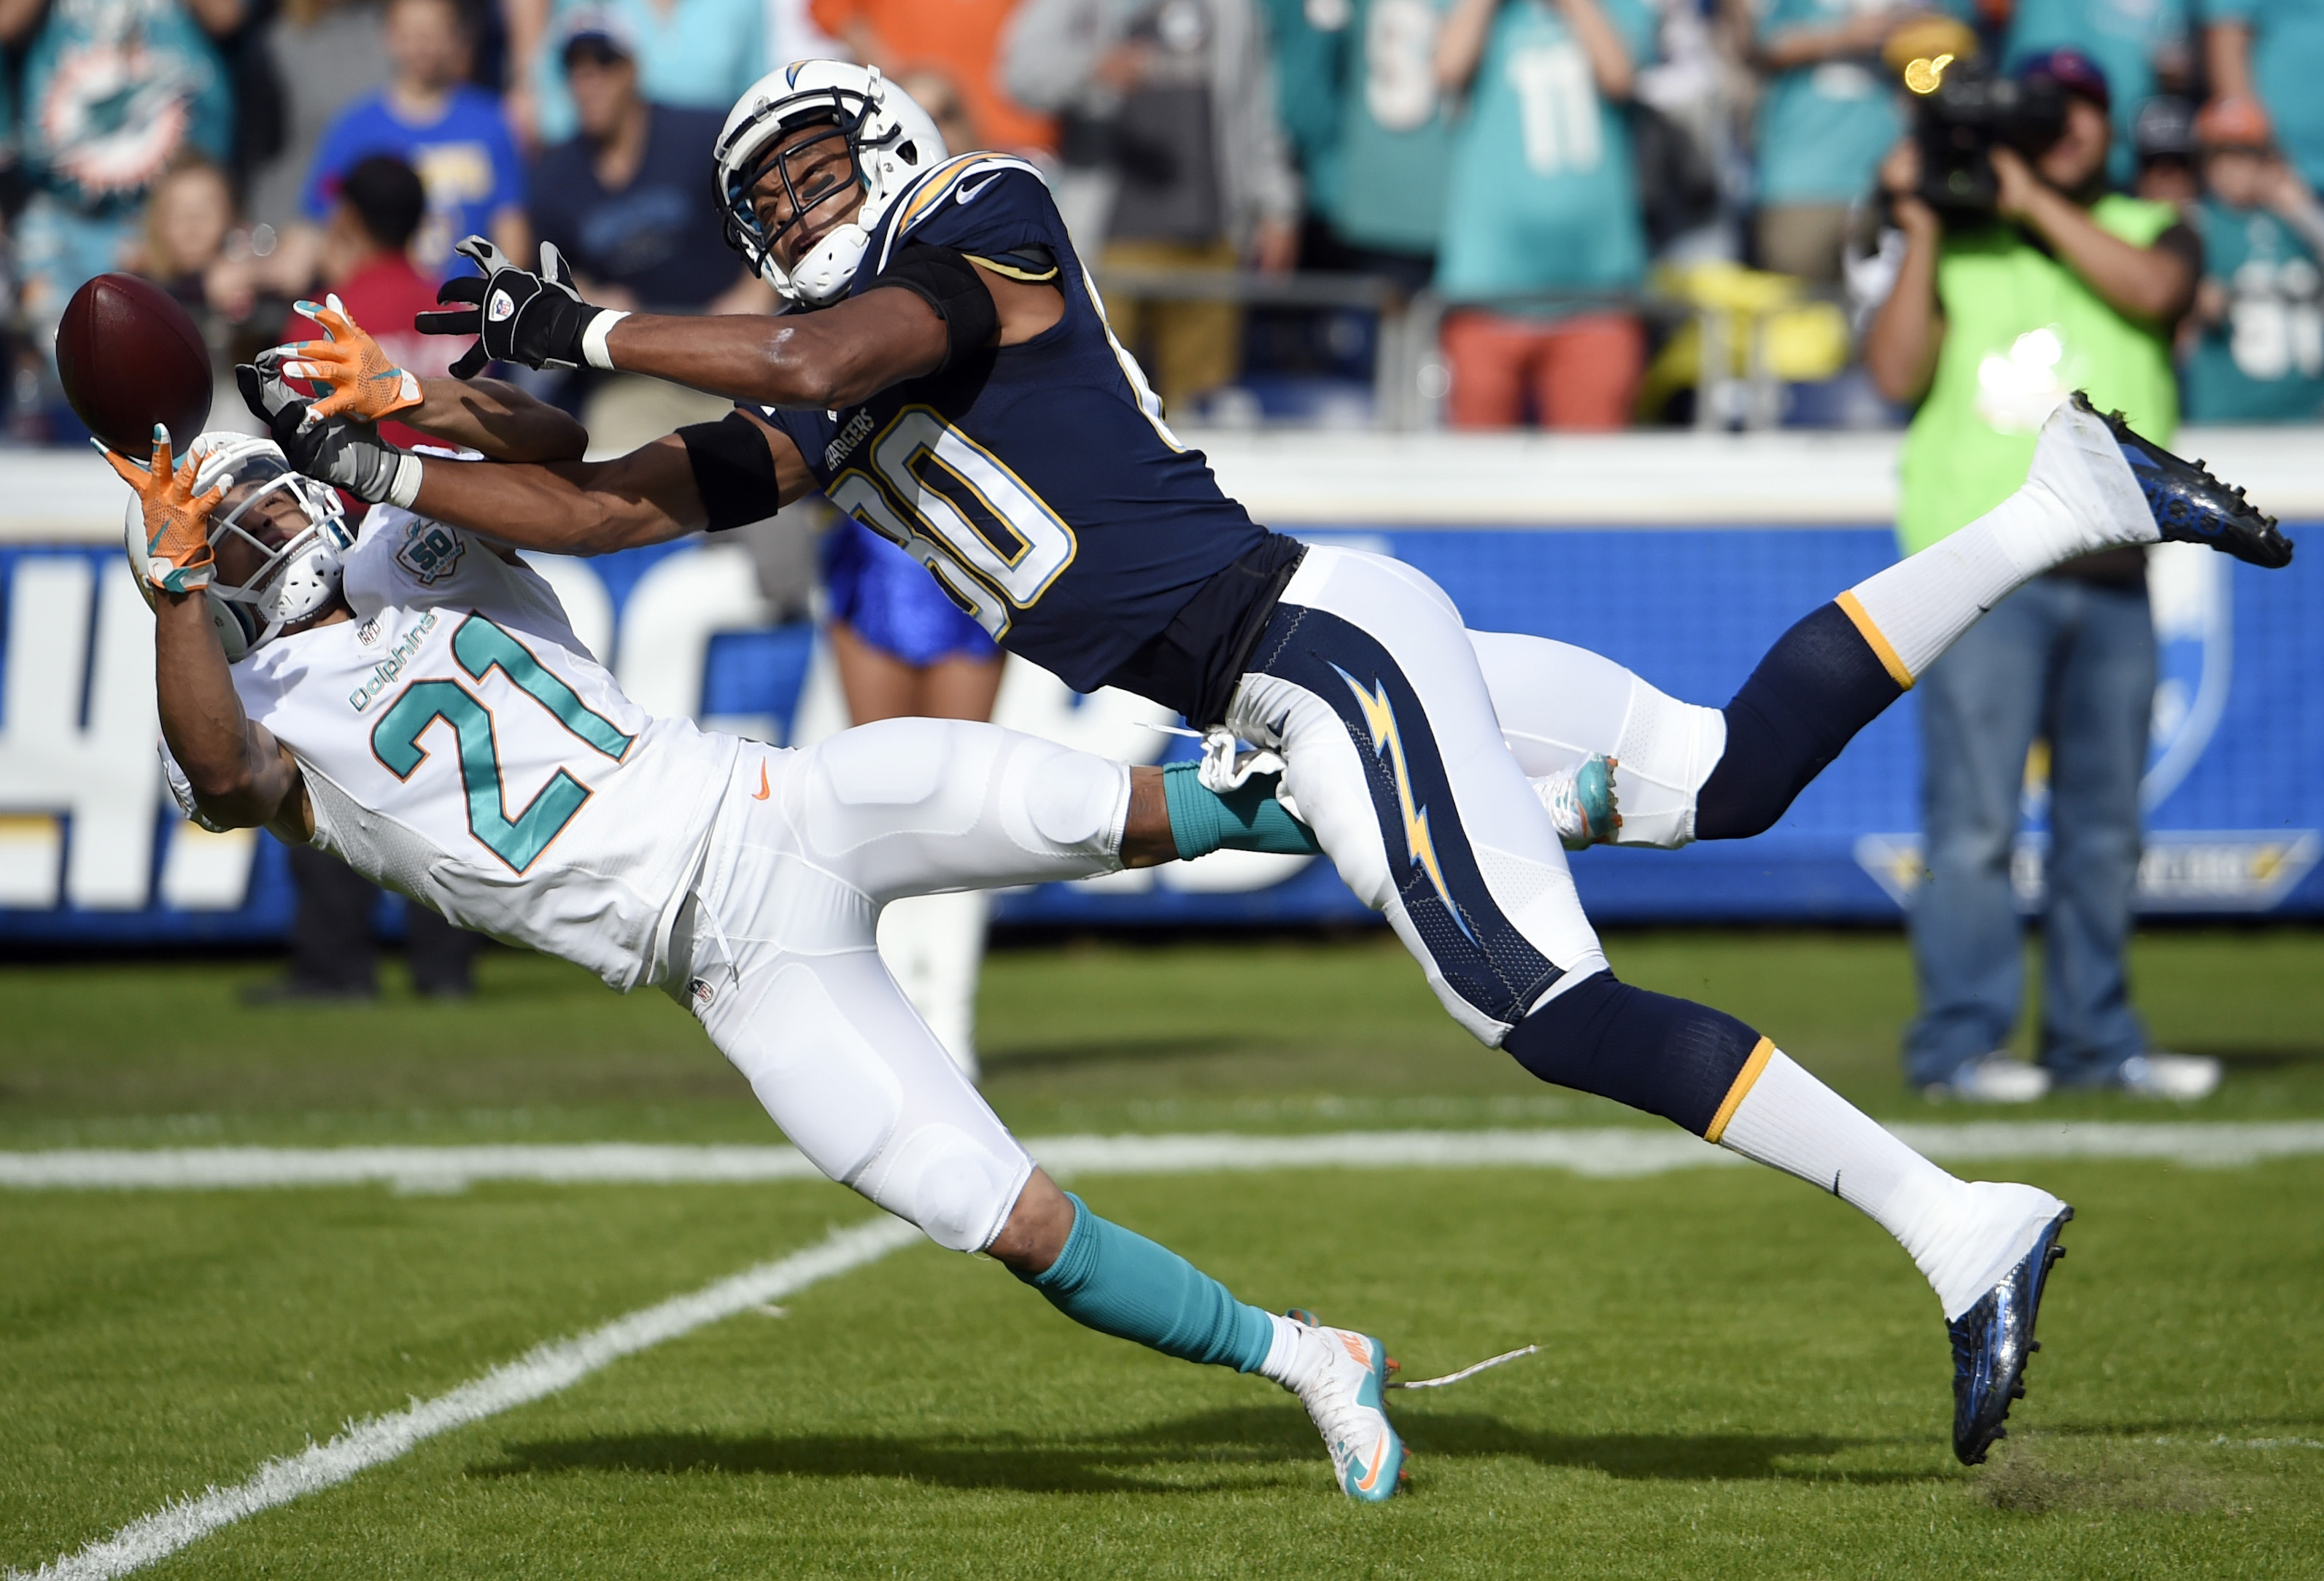 Miami Dolphins cornerback Brent Grimes, left, breaks up a pass intended for San Diego Chargers wide receiver Malcom Floyd during the first half in an NFL football game Sunday, Dec. 20, 2015, in San Diego. (AP Photo/Denis Poroy)